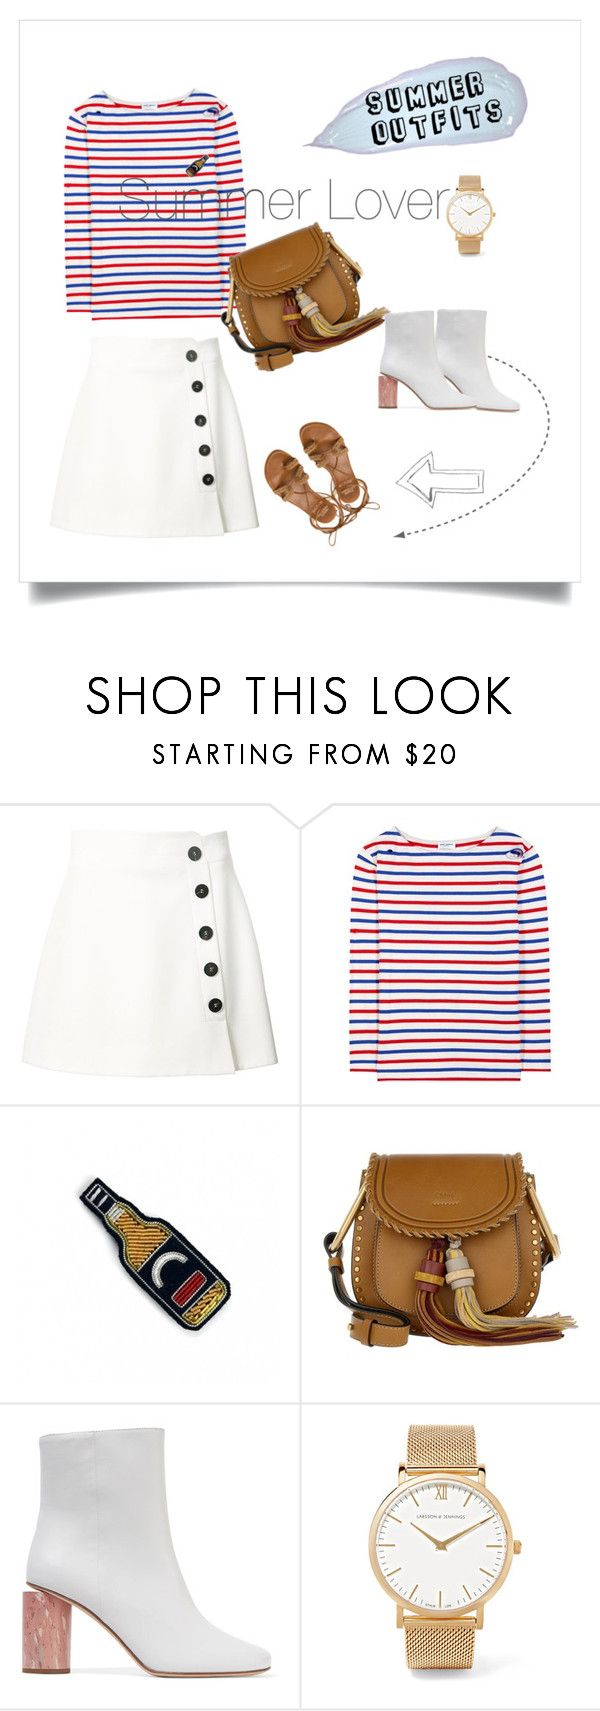 """Summer Lover!"" by yvetteyang1 on Polyvore featuring Misha Nonoo, Yves Saint Laurent, Macon & Lesquoy, Chloé, Acne Studios, Larsson & Jennings, Stuart Weitzman, ootd, summerstyle and summeroutfits"